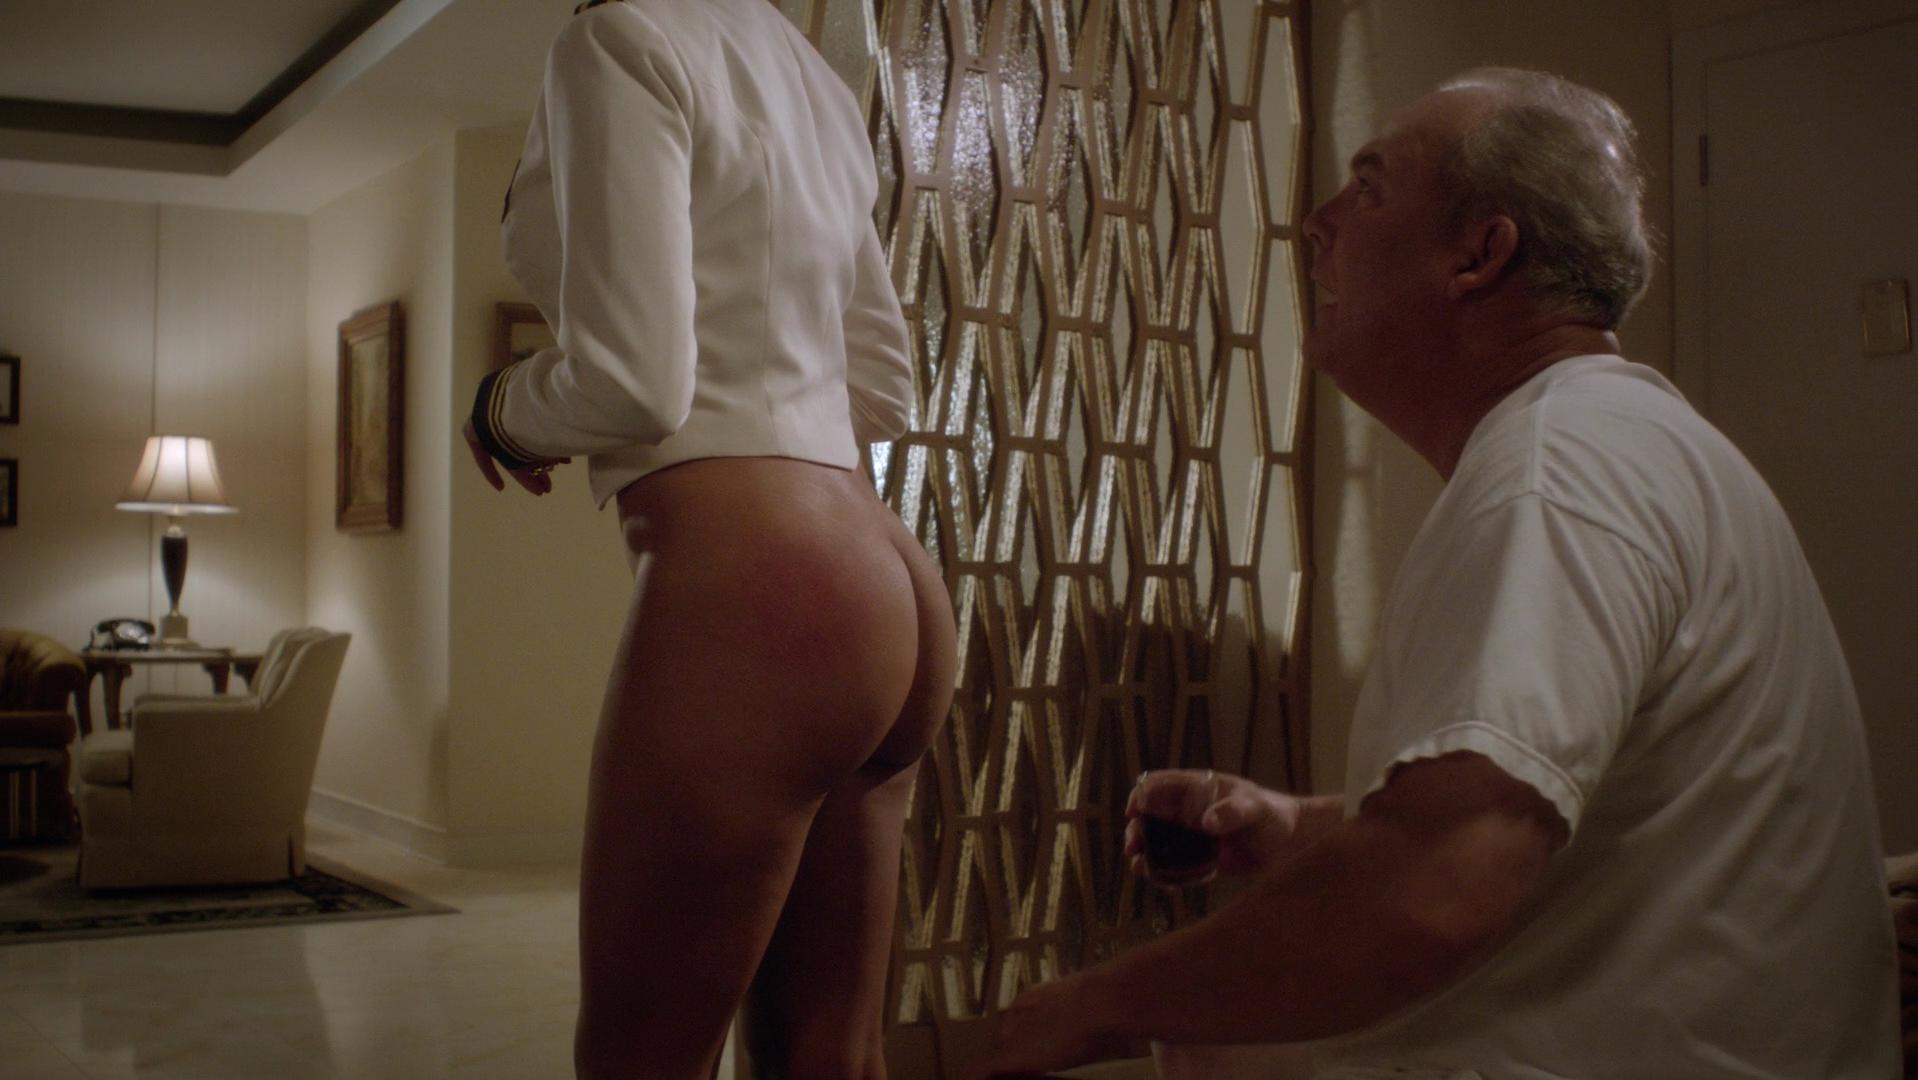 This actor's butt is the star of his off